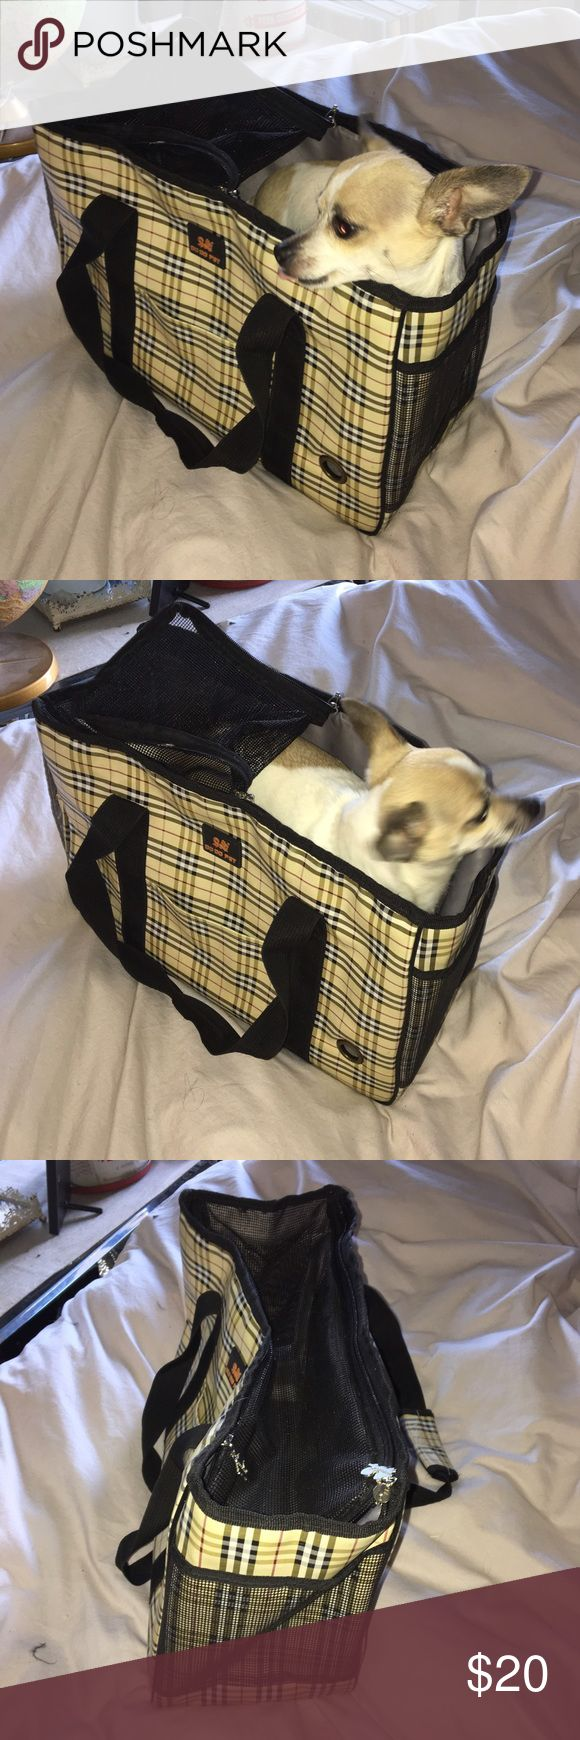 Small size dog pet travel bag Burberry print Great shape travel of for very small dog. Very sturdy has a water proof lining and carry straps. Awesome roll up front door for the dog to view out. Mesh top. Awesome plaid Burberry print. do do pet Bags Shoulder Bags